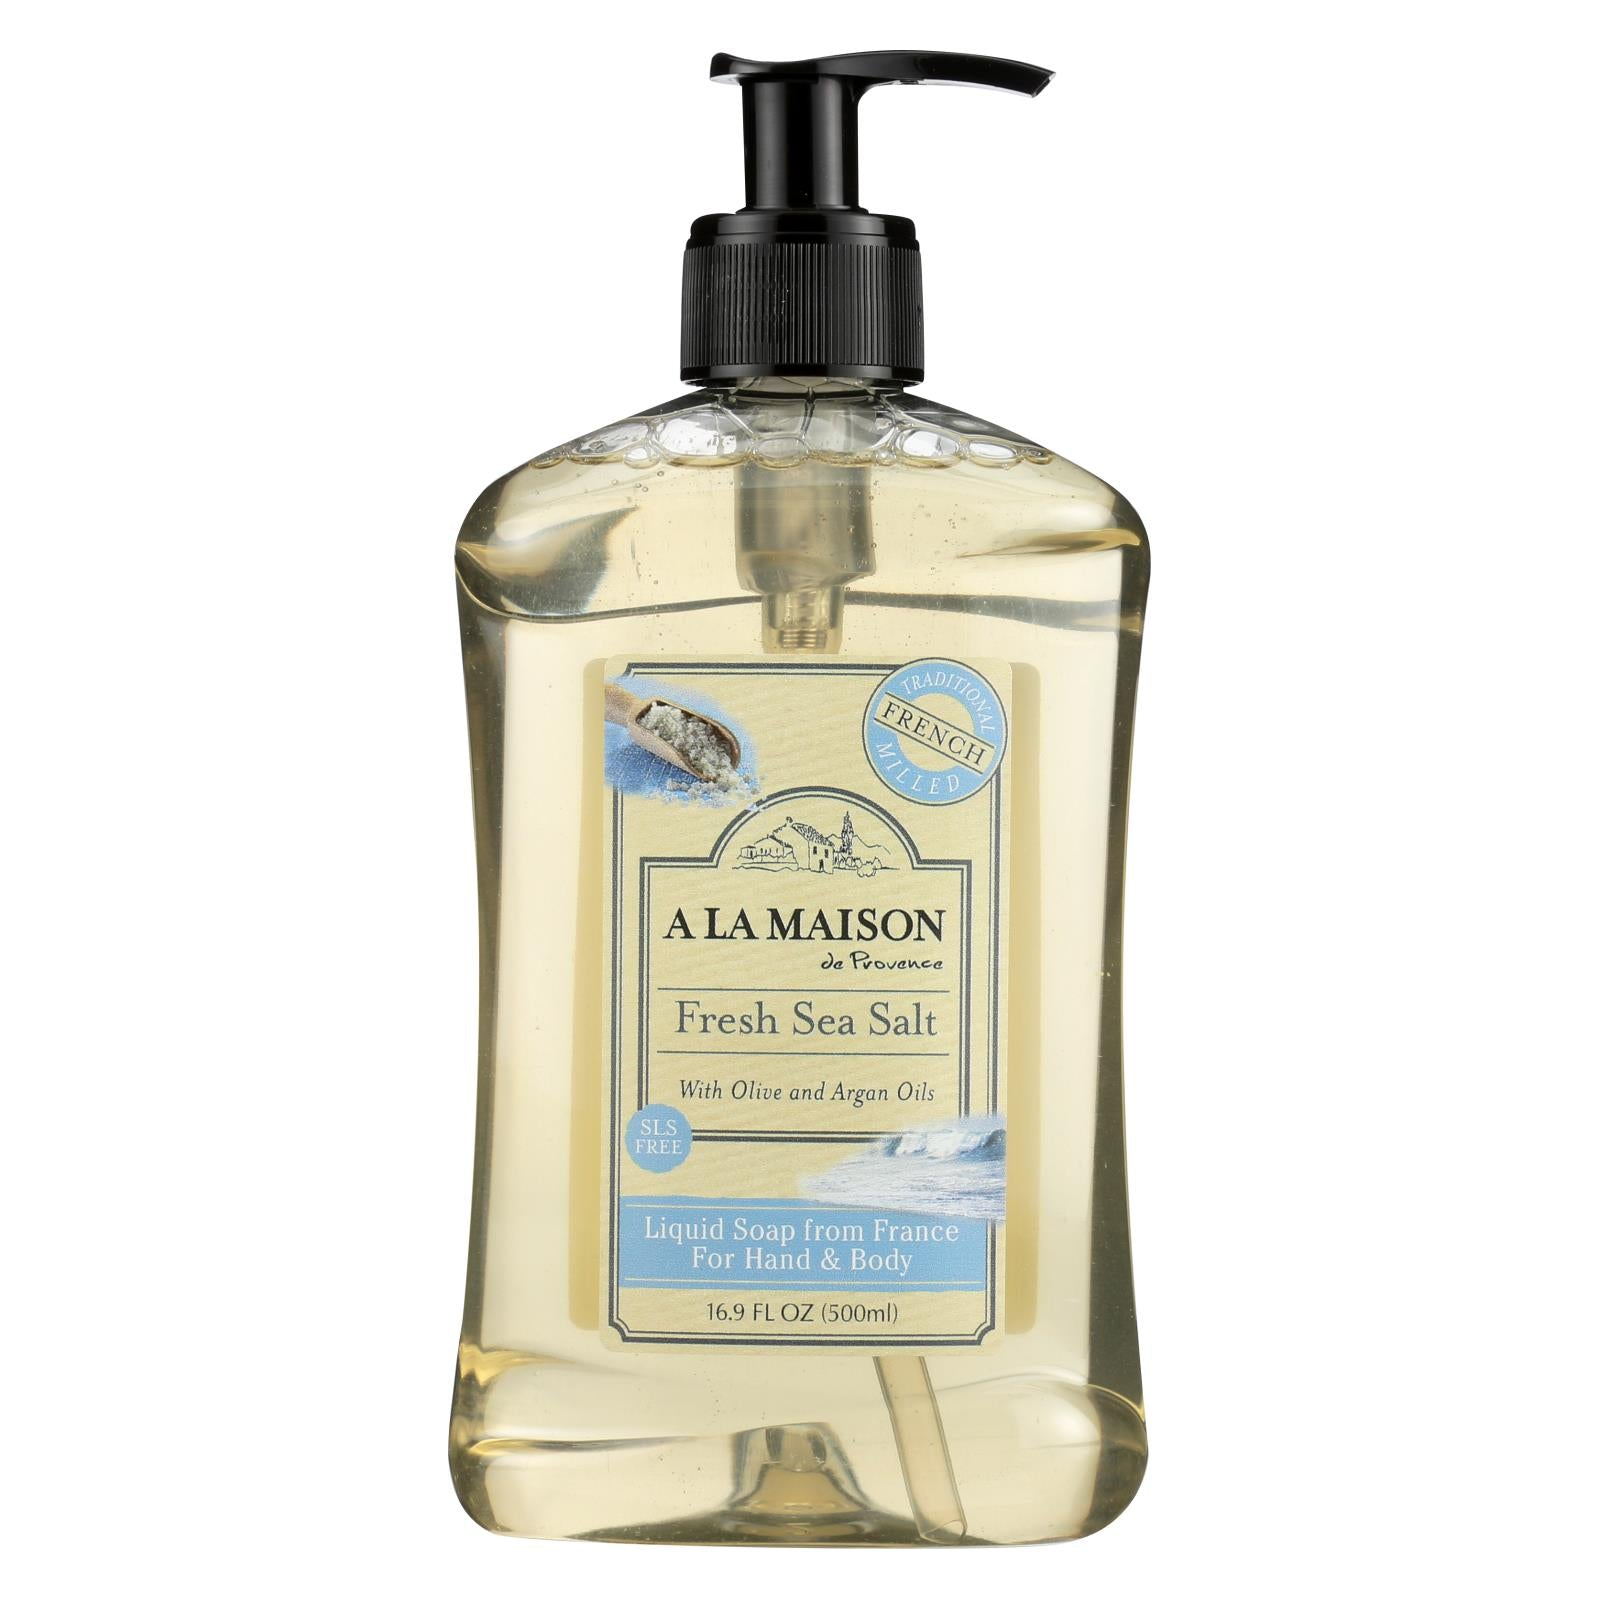 A la maison french liquid soap fresh sea salt 16 9 oz for A la maison french